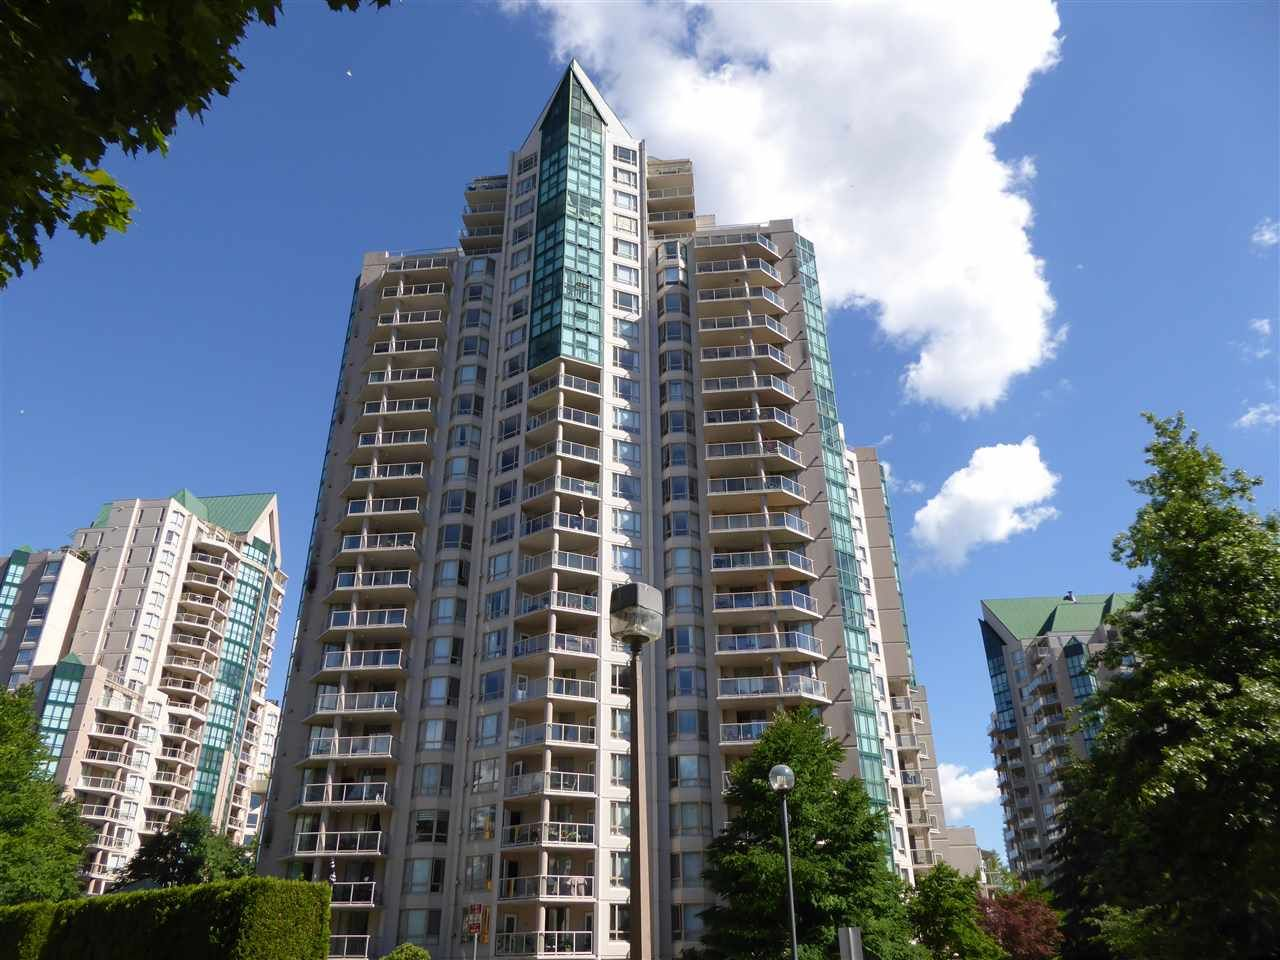 """Main Photo: 1703 1199 EASTWOOD Street in Coquitlam: North Coquitlam Condo for sale in """"SELKIRK"""" : MLS®# R2283280"""